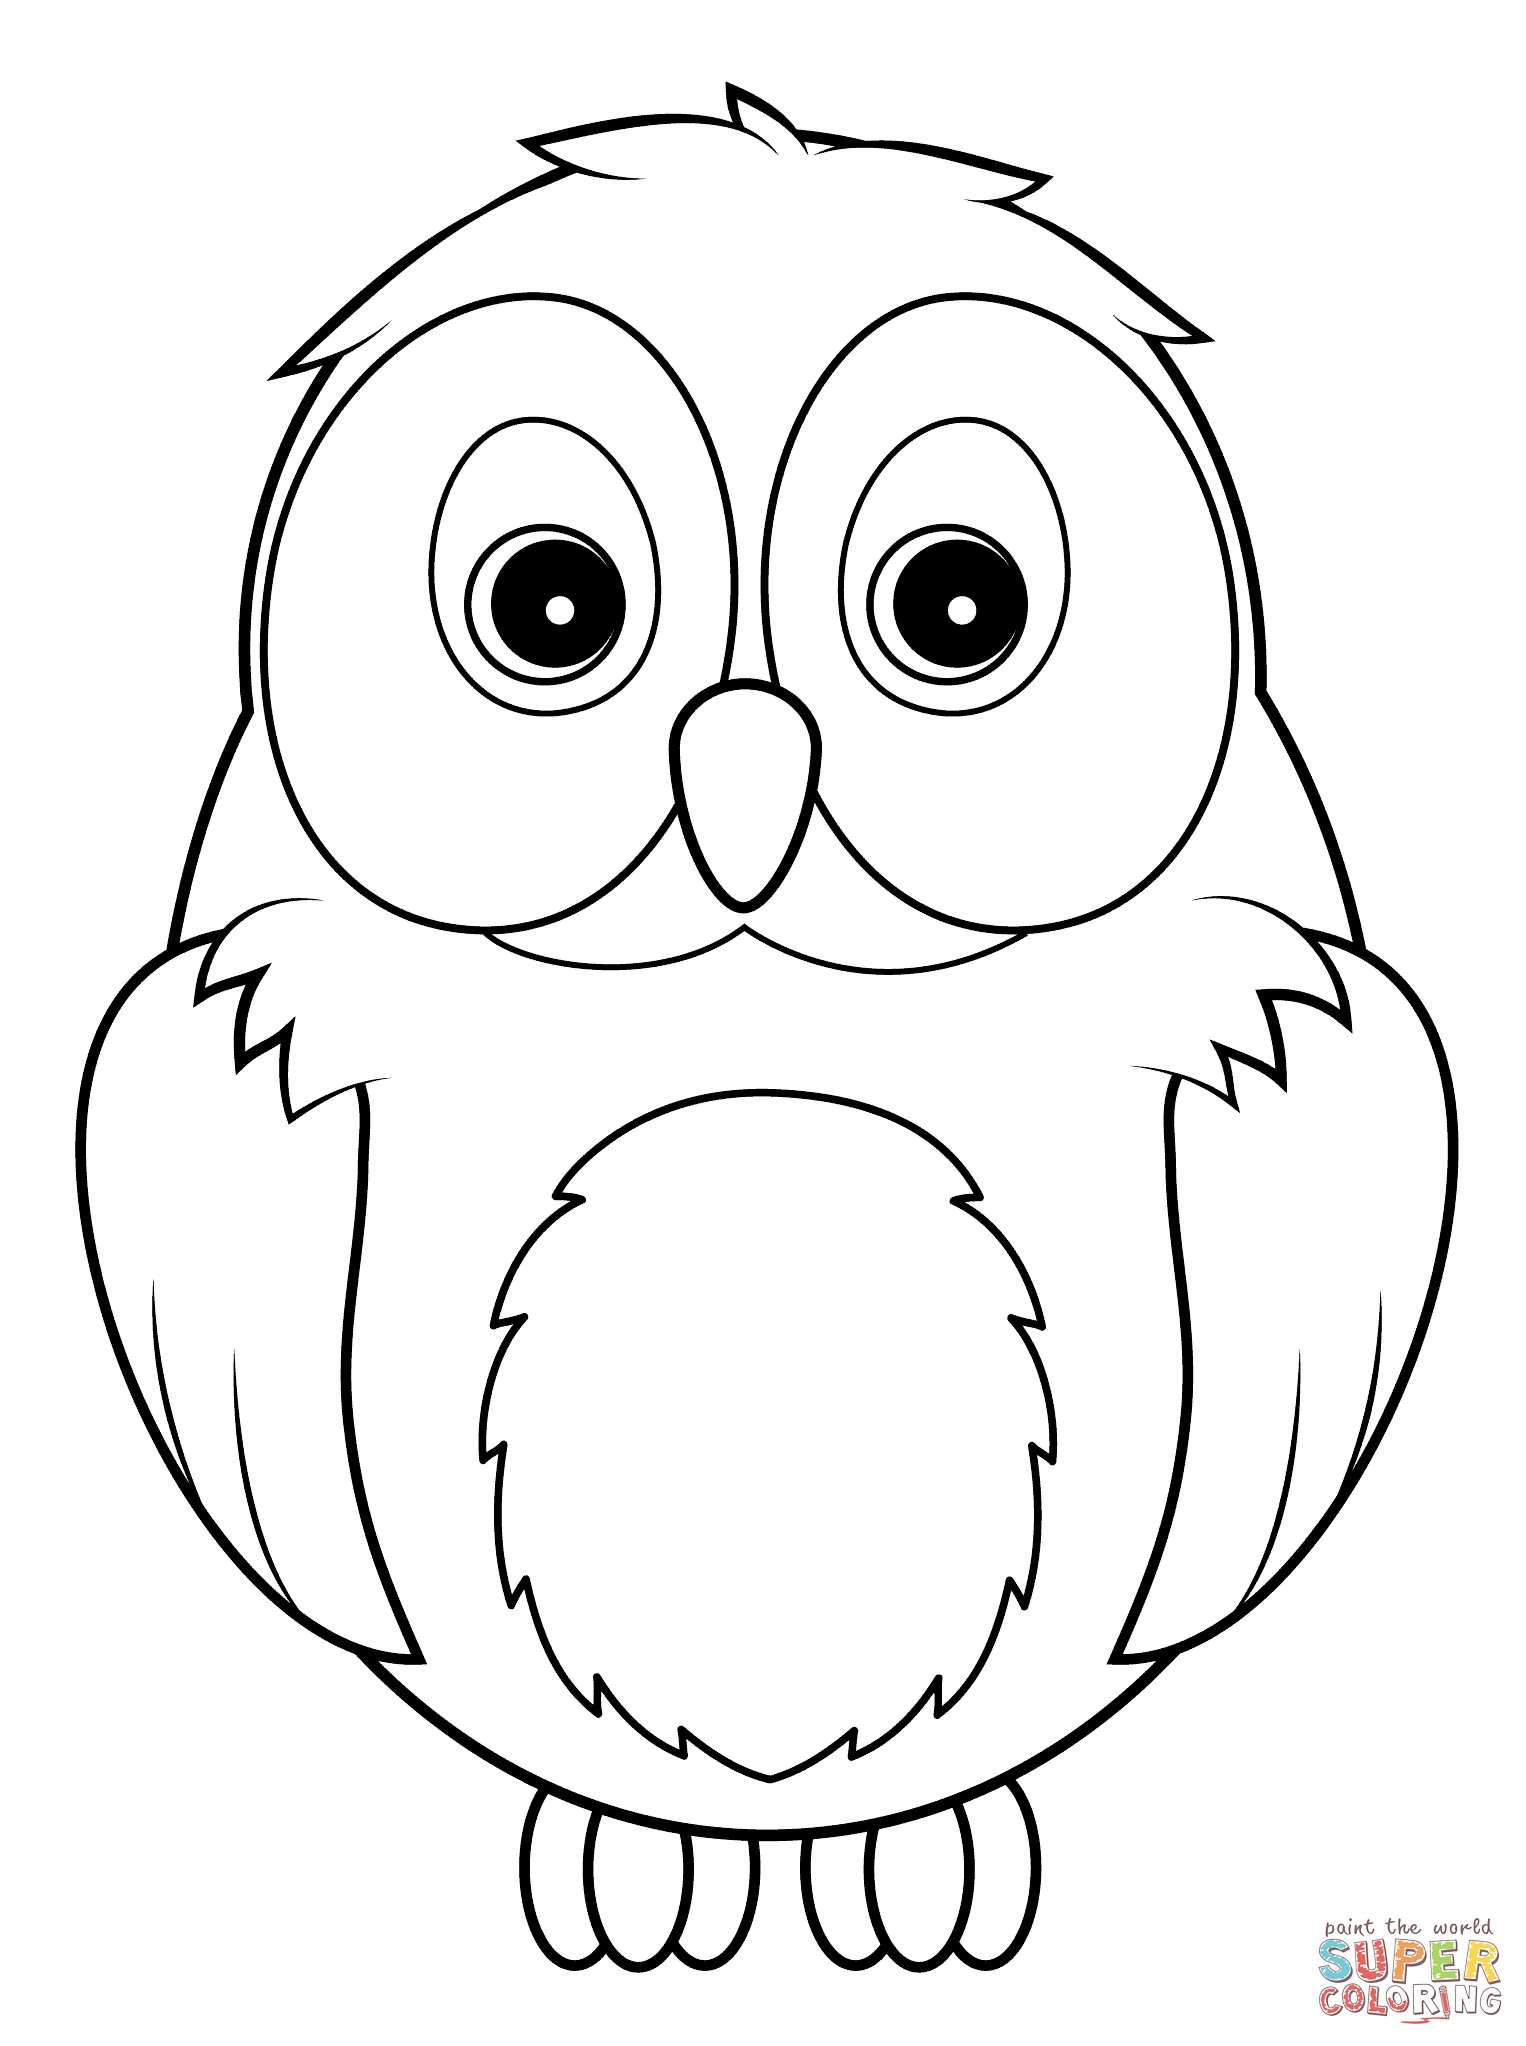 owl picture to color difficult owl coloring pages bestappsforkidscom picture color owl to